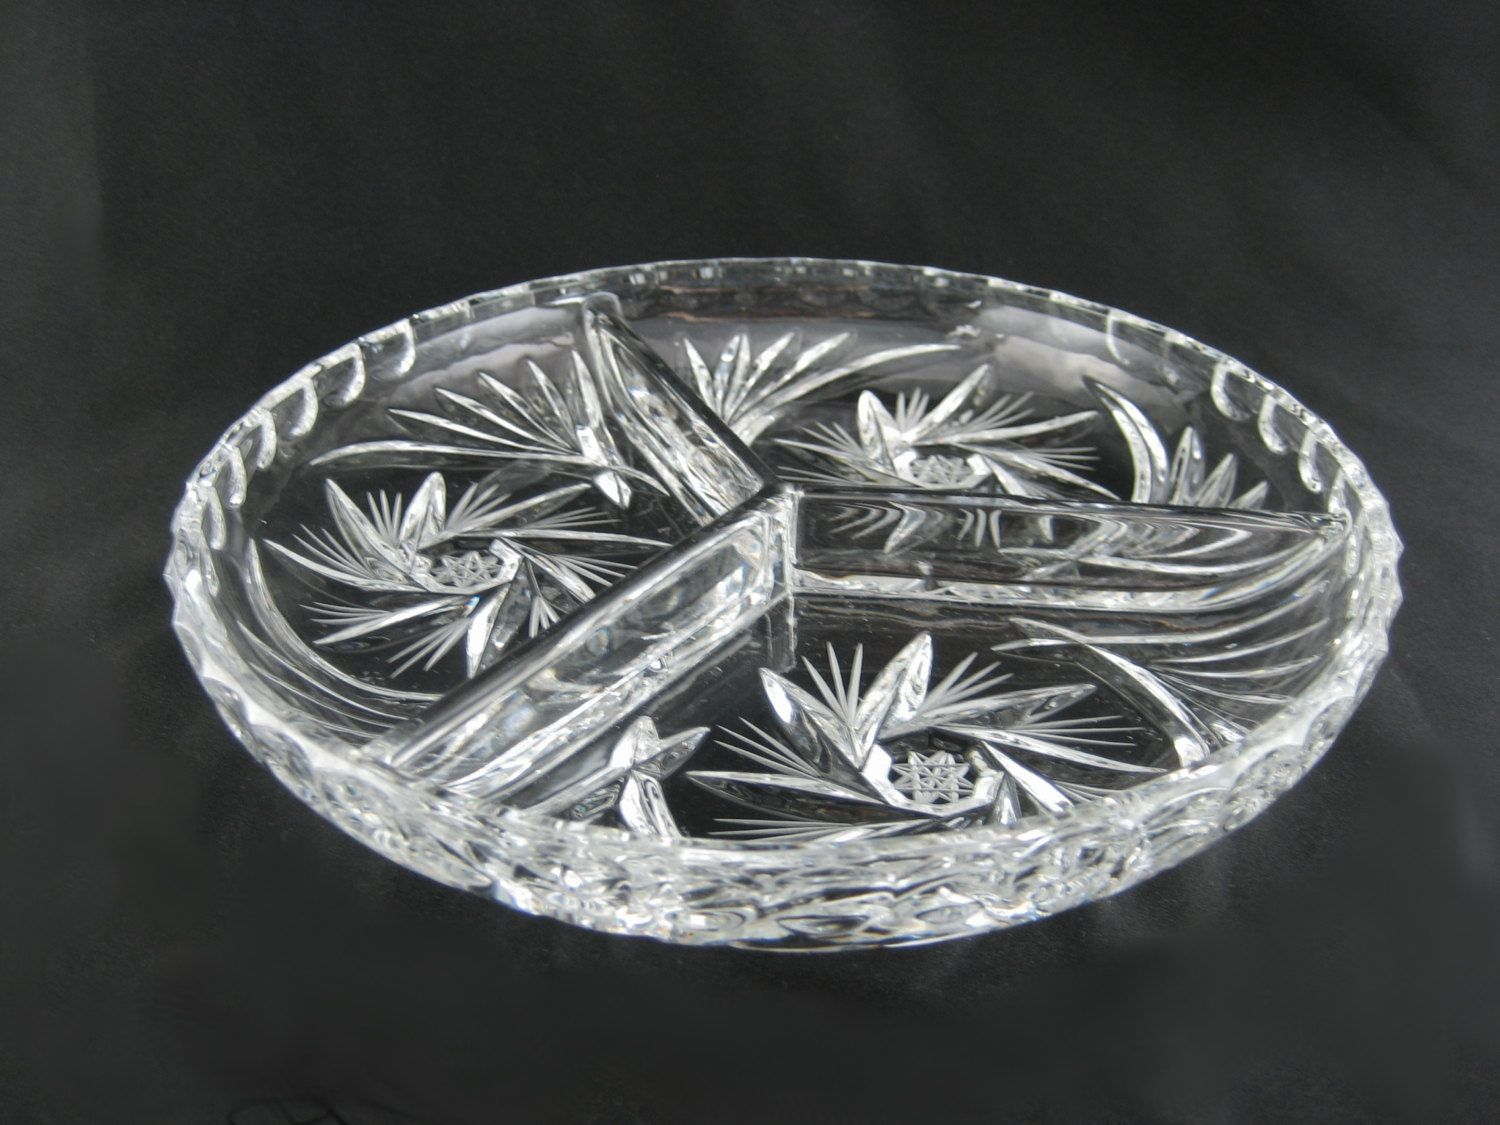 Crystal Glass Round 3 Sectioned Dish Tri Divided Round Plate Serving Condiment Tray Snacks Candy & Crystal Glass Round 3 Sectioned Dish Tri Divided Round Plate ...